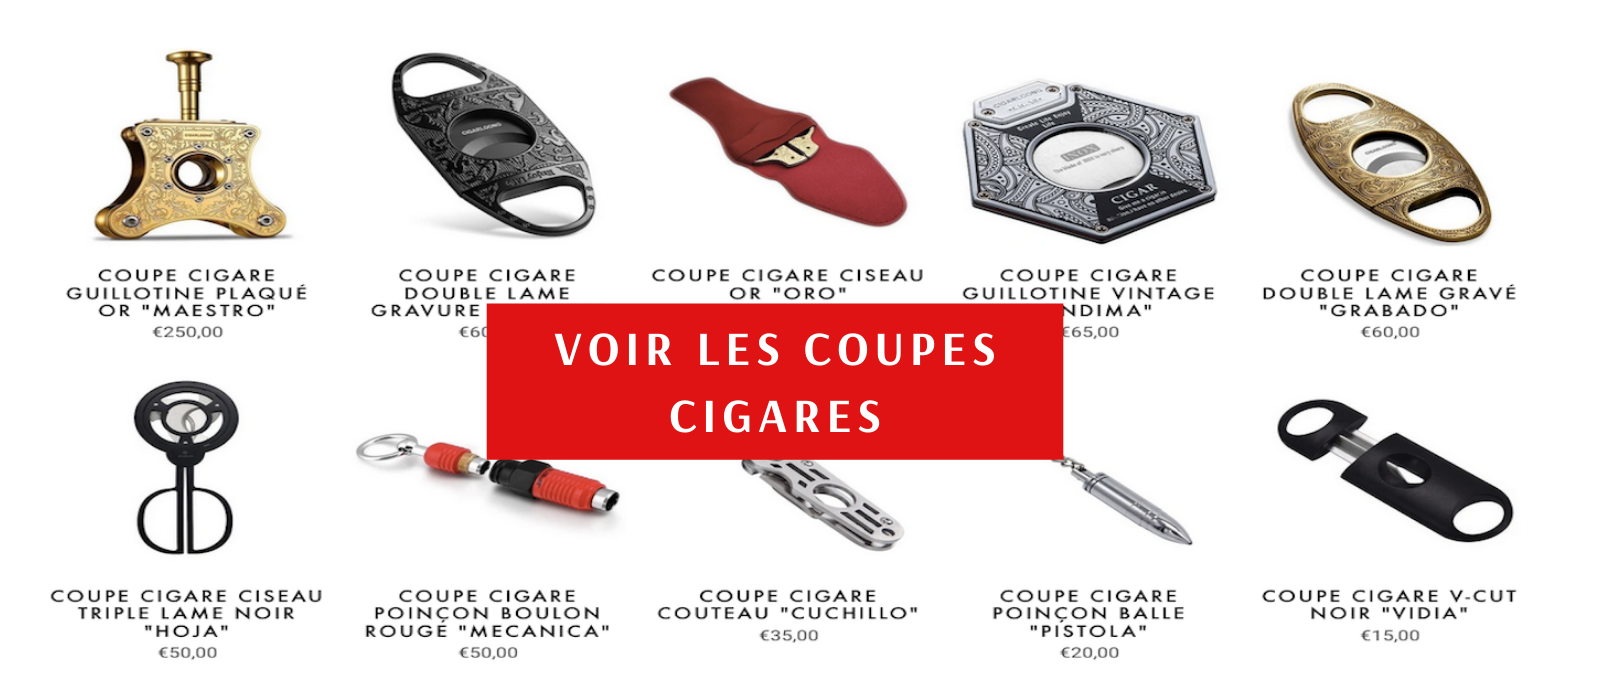 Coupe cigare